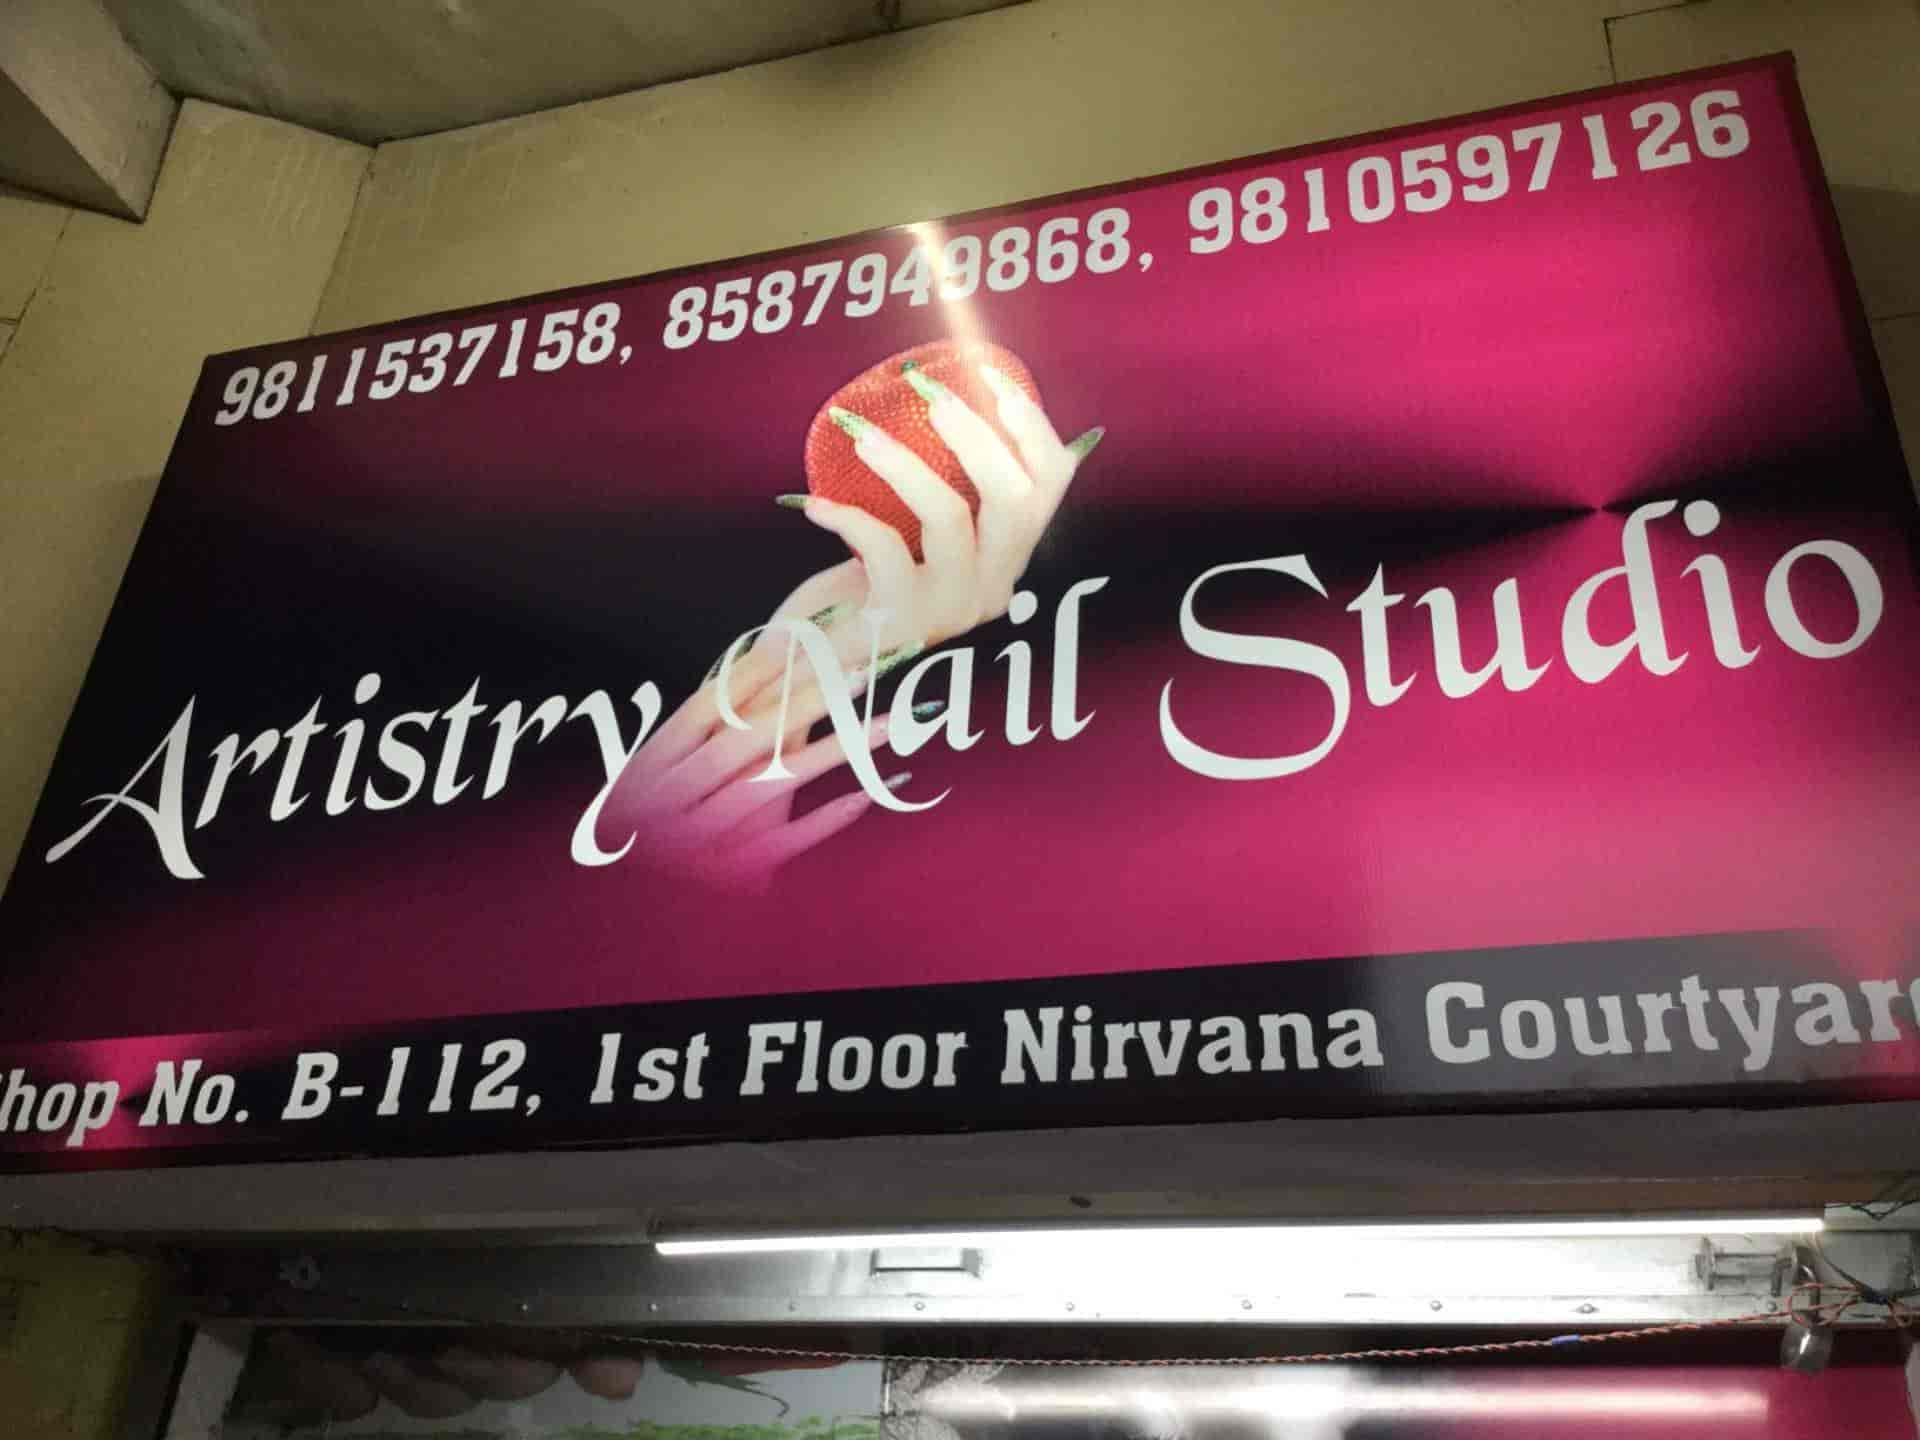 Artistry Nail Studio Photos, Nirvana Country, Gurgaon- Pictures ...